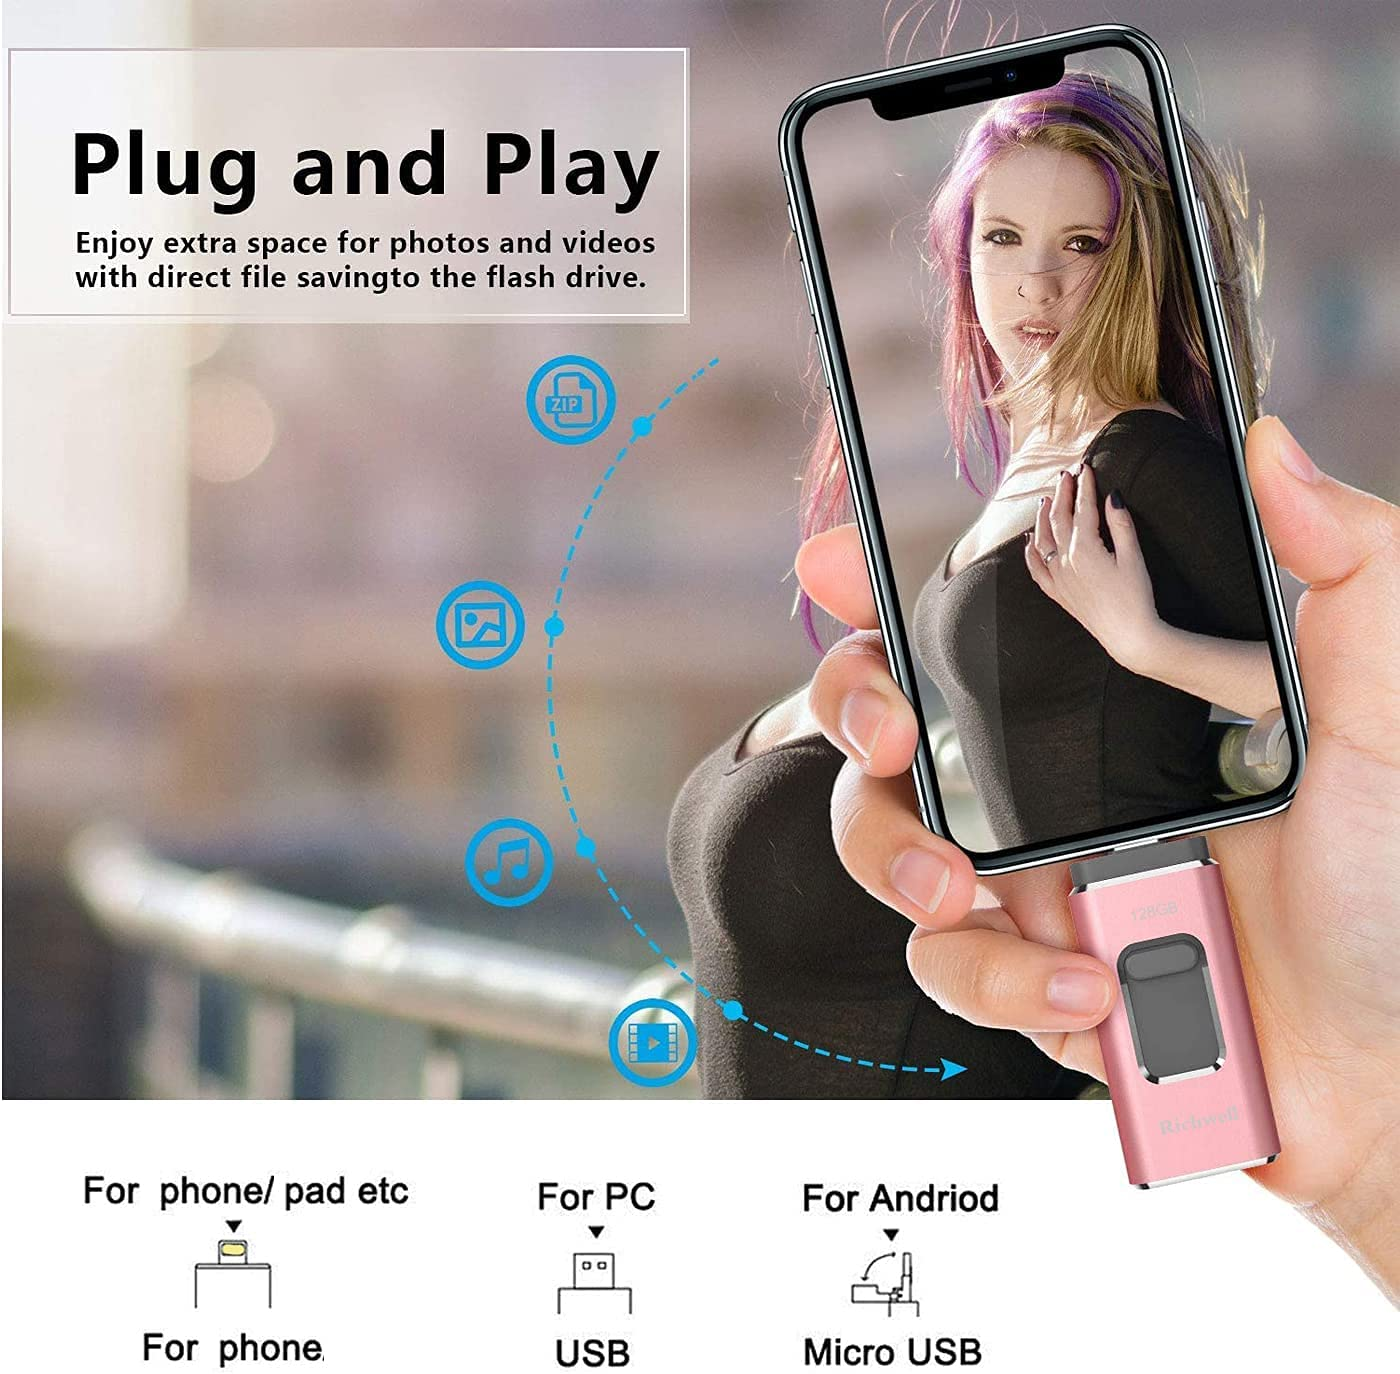 USB Flash Drive 128GB for Phone Photo Stick Thumb Drives USB3.0 iOS Memory Stick 3in1 External Storage Richwell Compatible Phone Pad Mac Android and Compute Pink-XT 128G